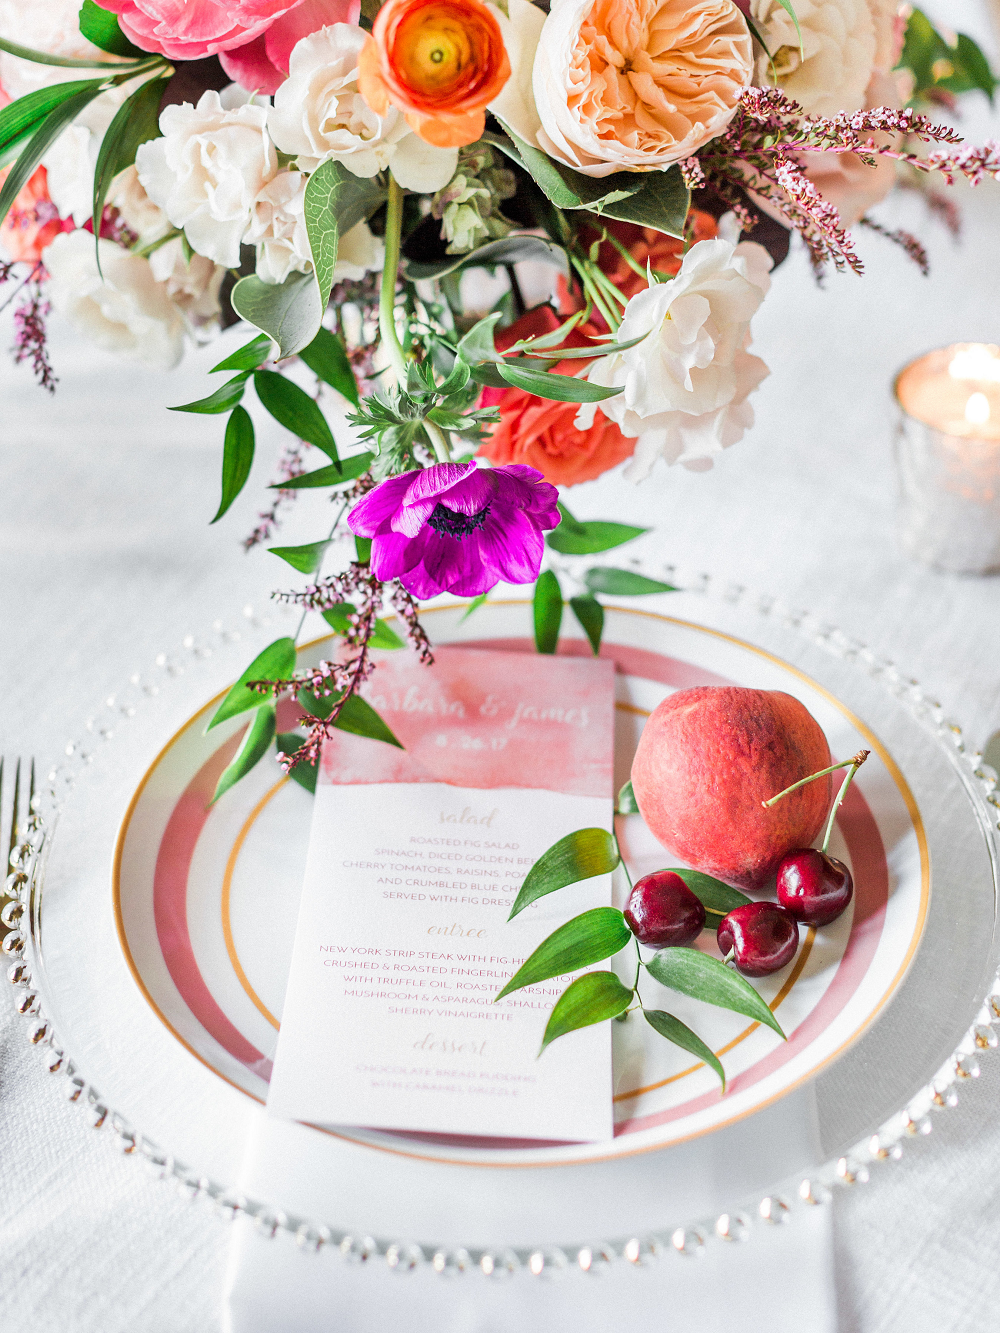 Whimsical Summer Wedding Styled Shoot at Henderson Castle Featured in WeddingDay Magazine Vintage Plates peaches cherries